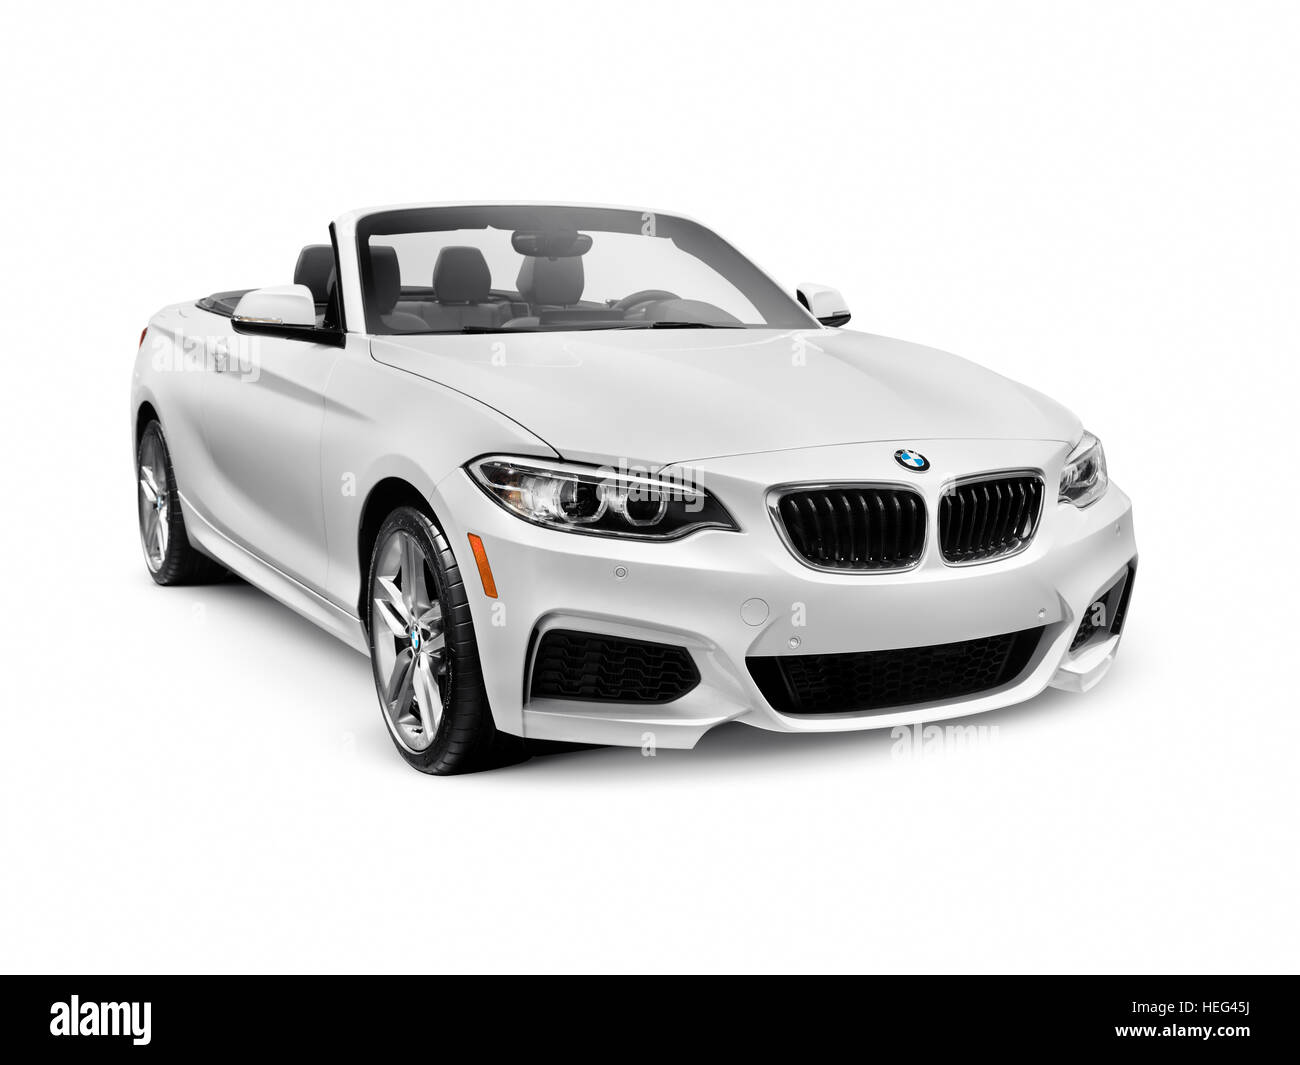 White 2016 BMW 2 Series Coupé, luxury car - Stock Image